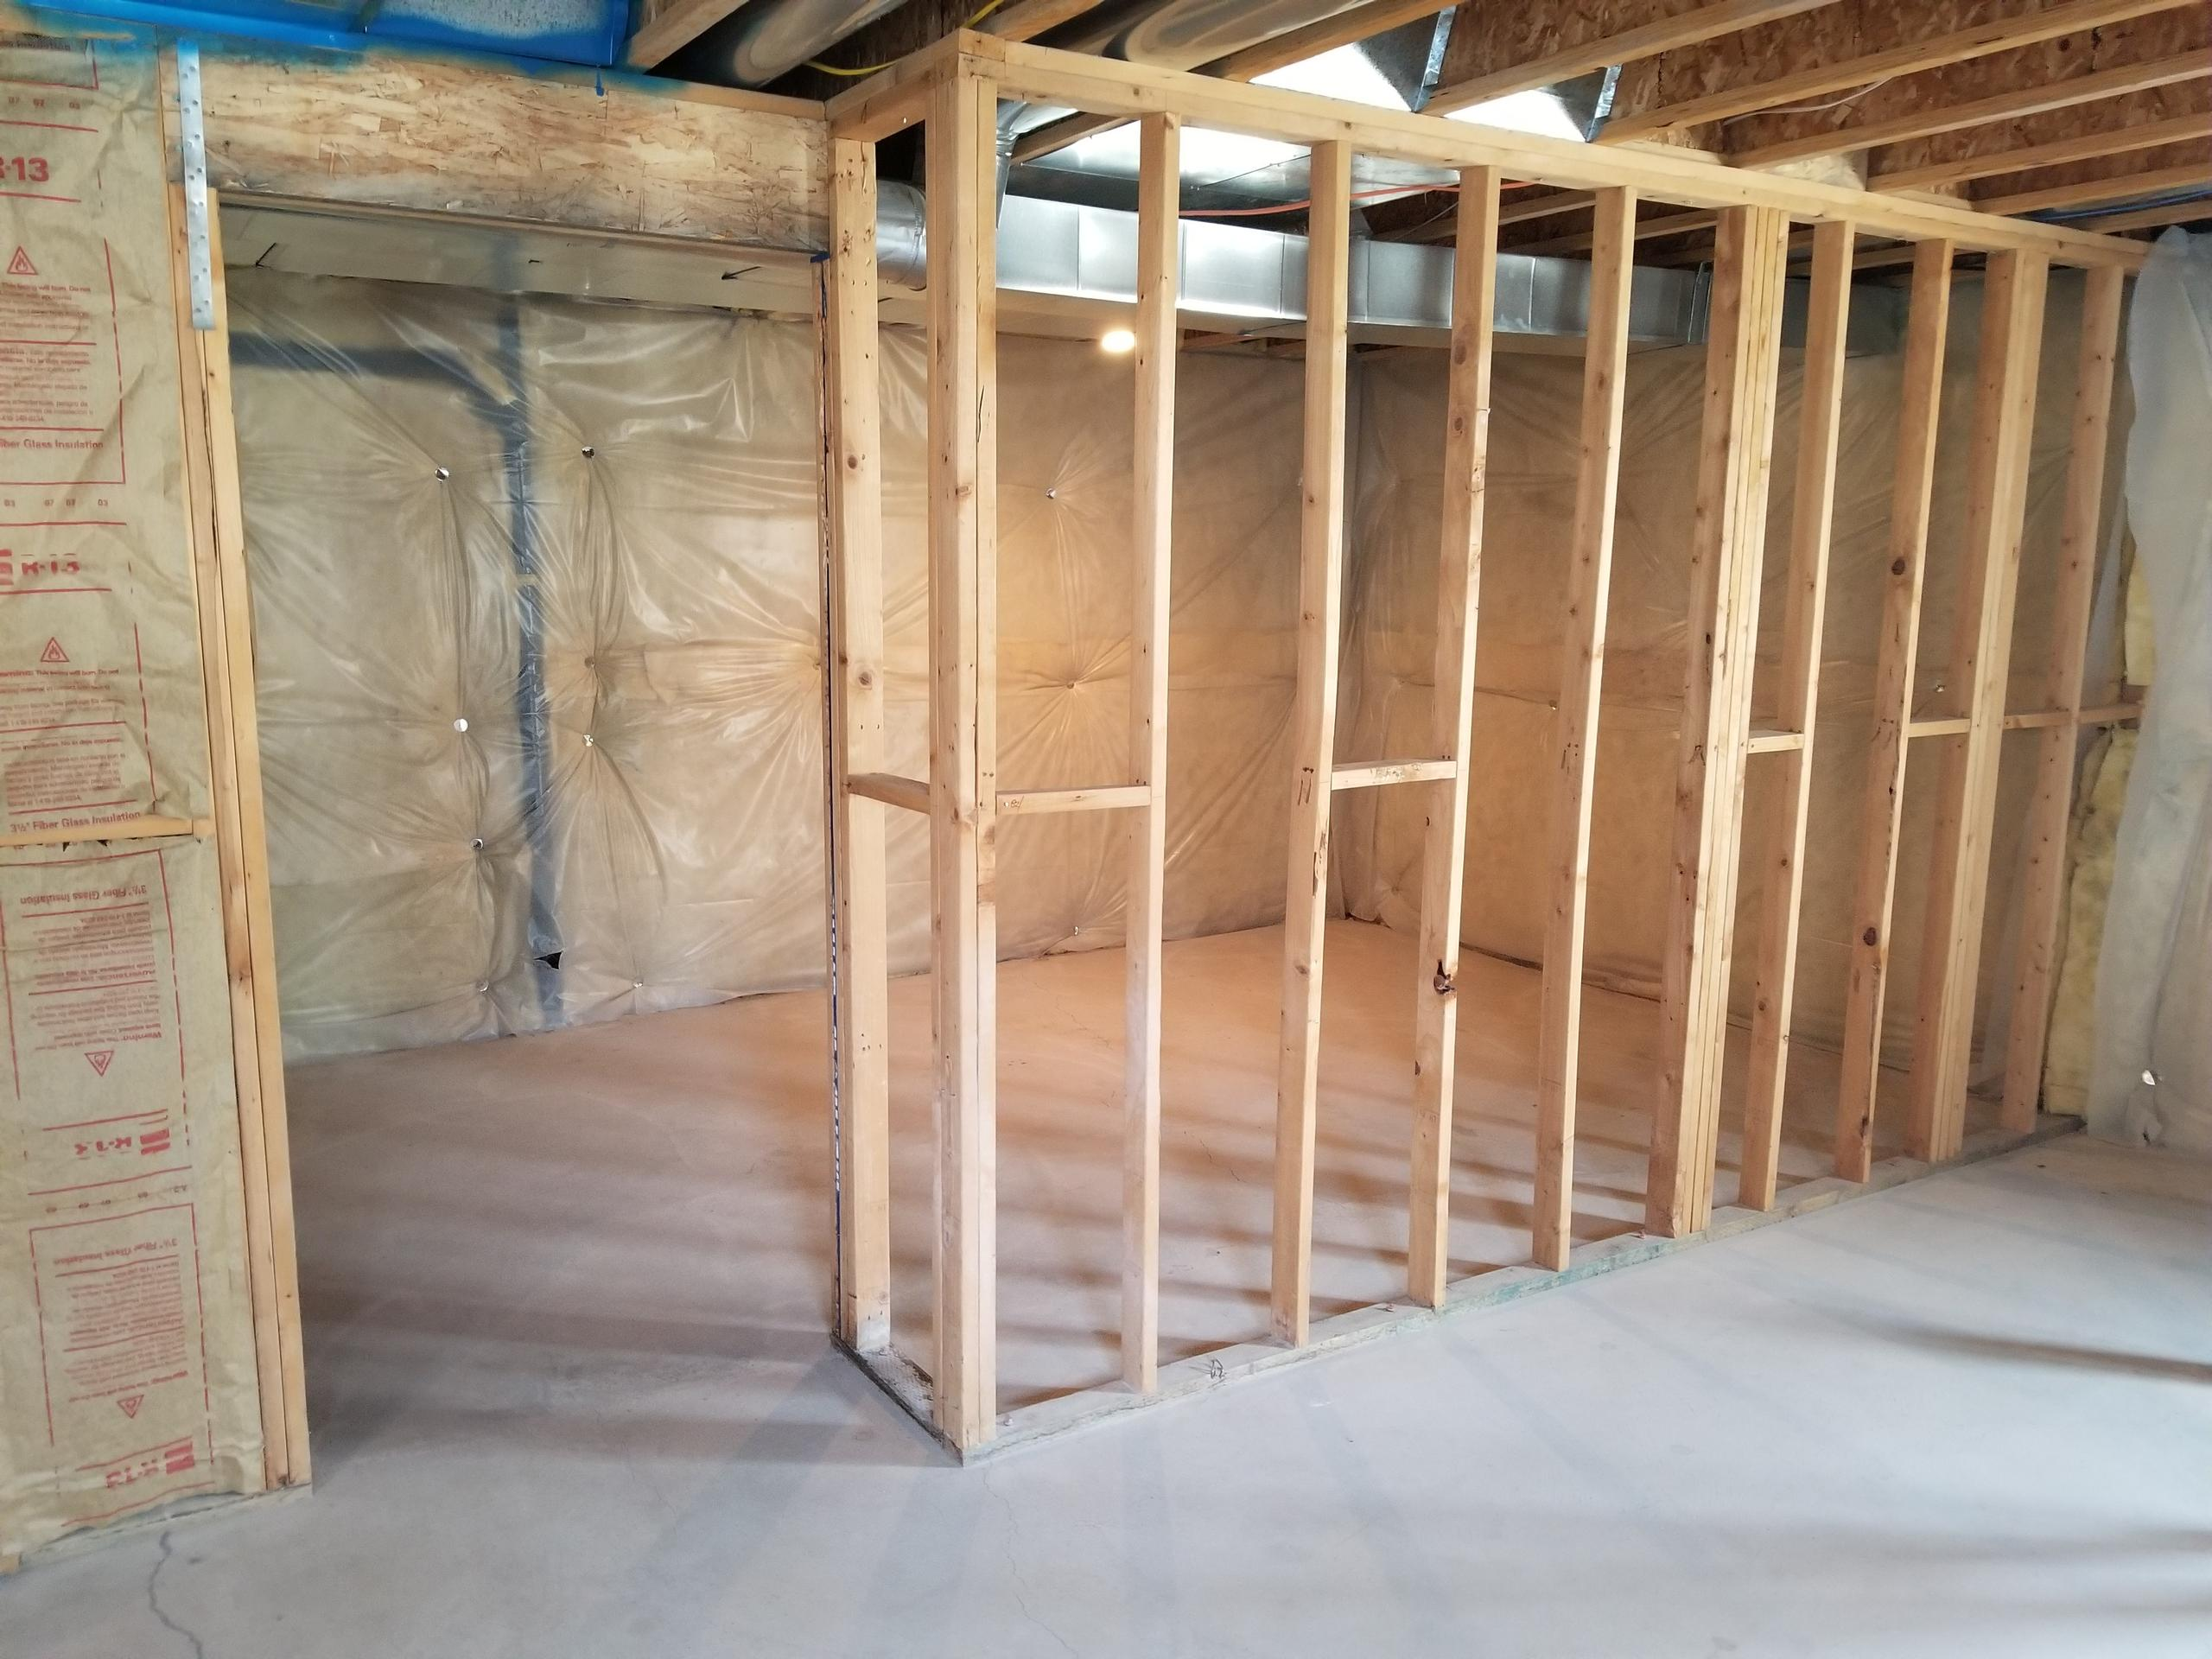 50x50 Basement self storage unit